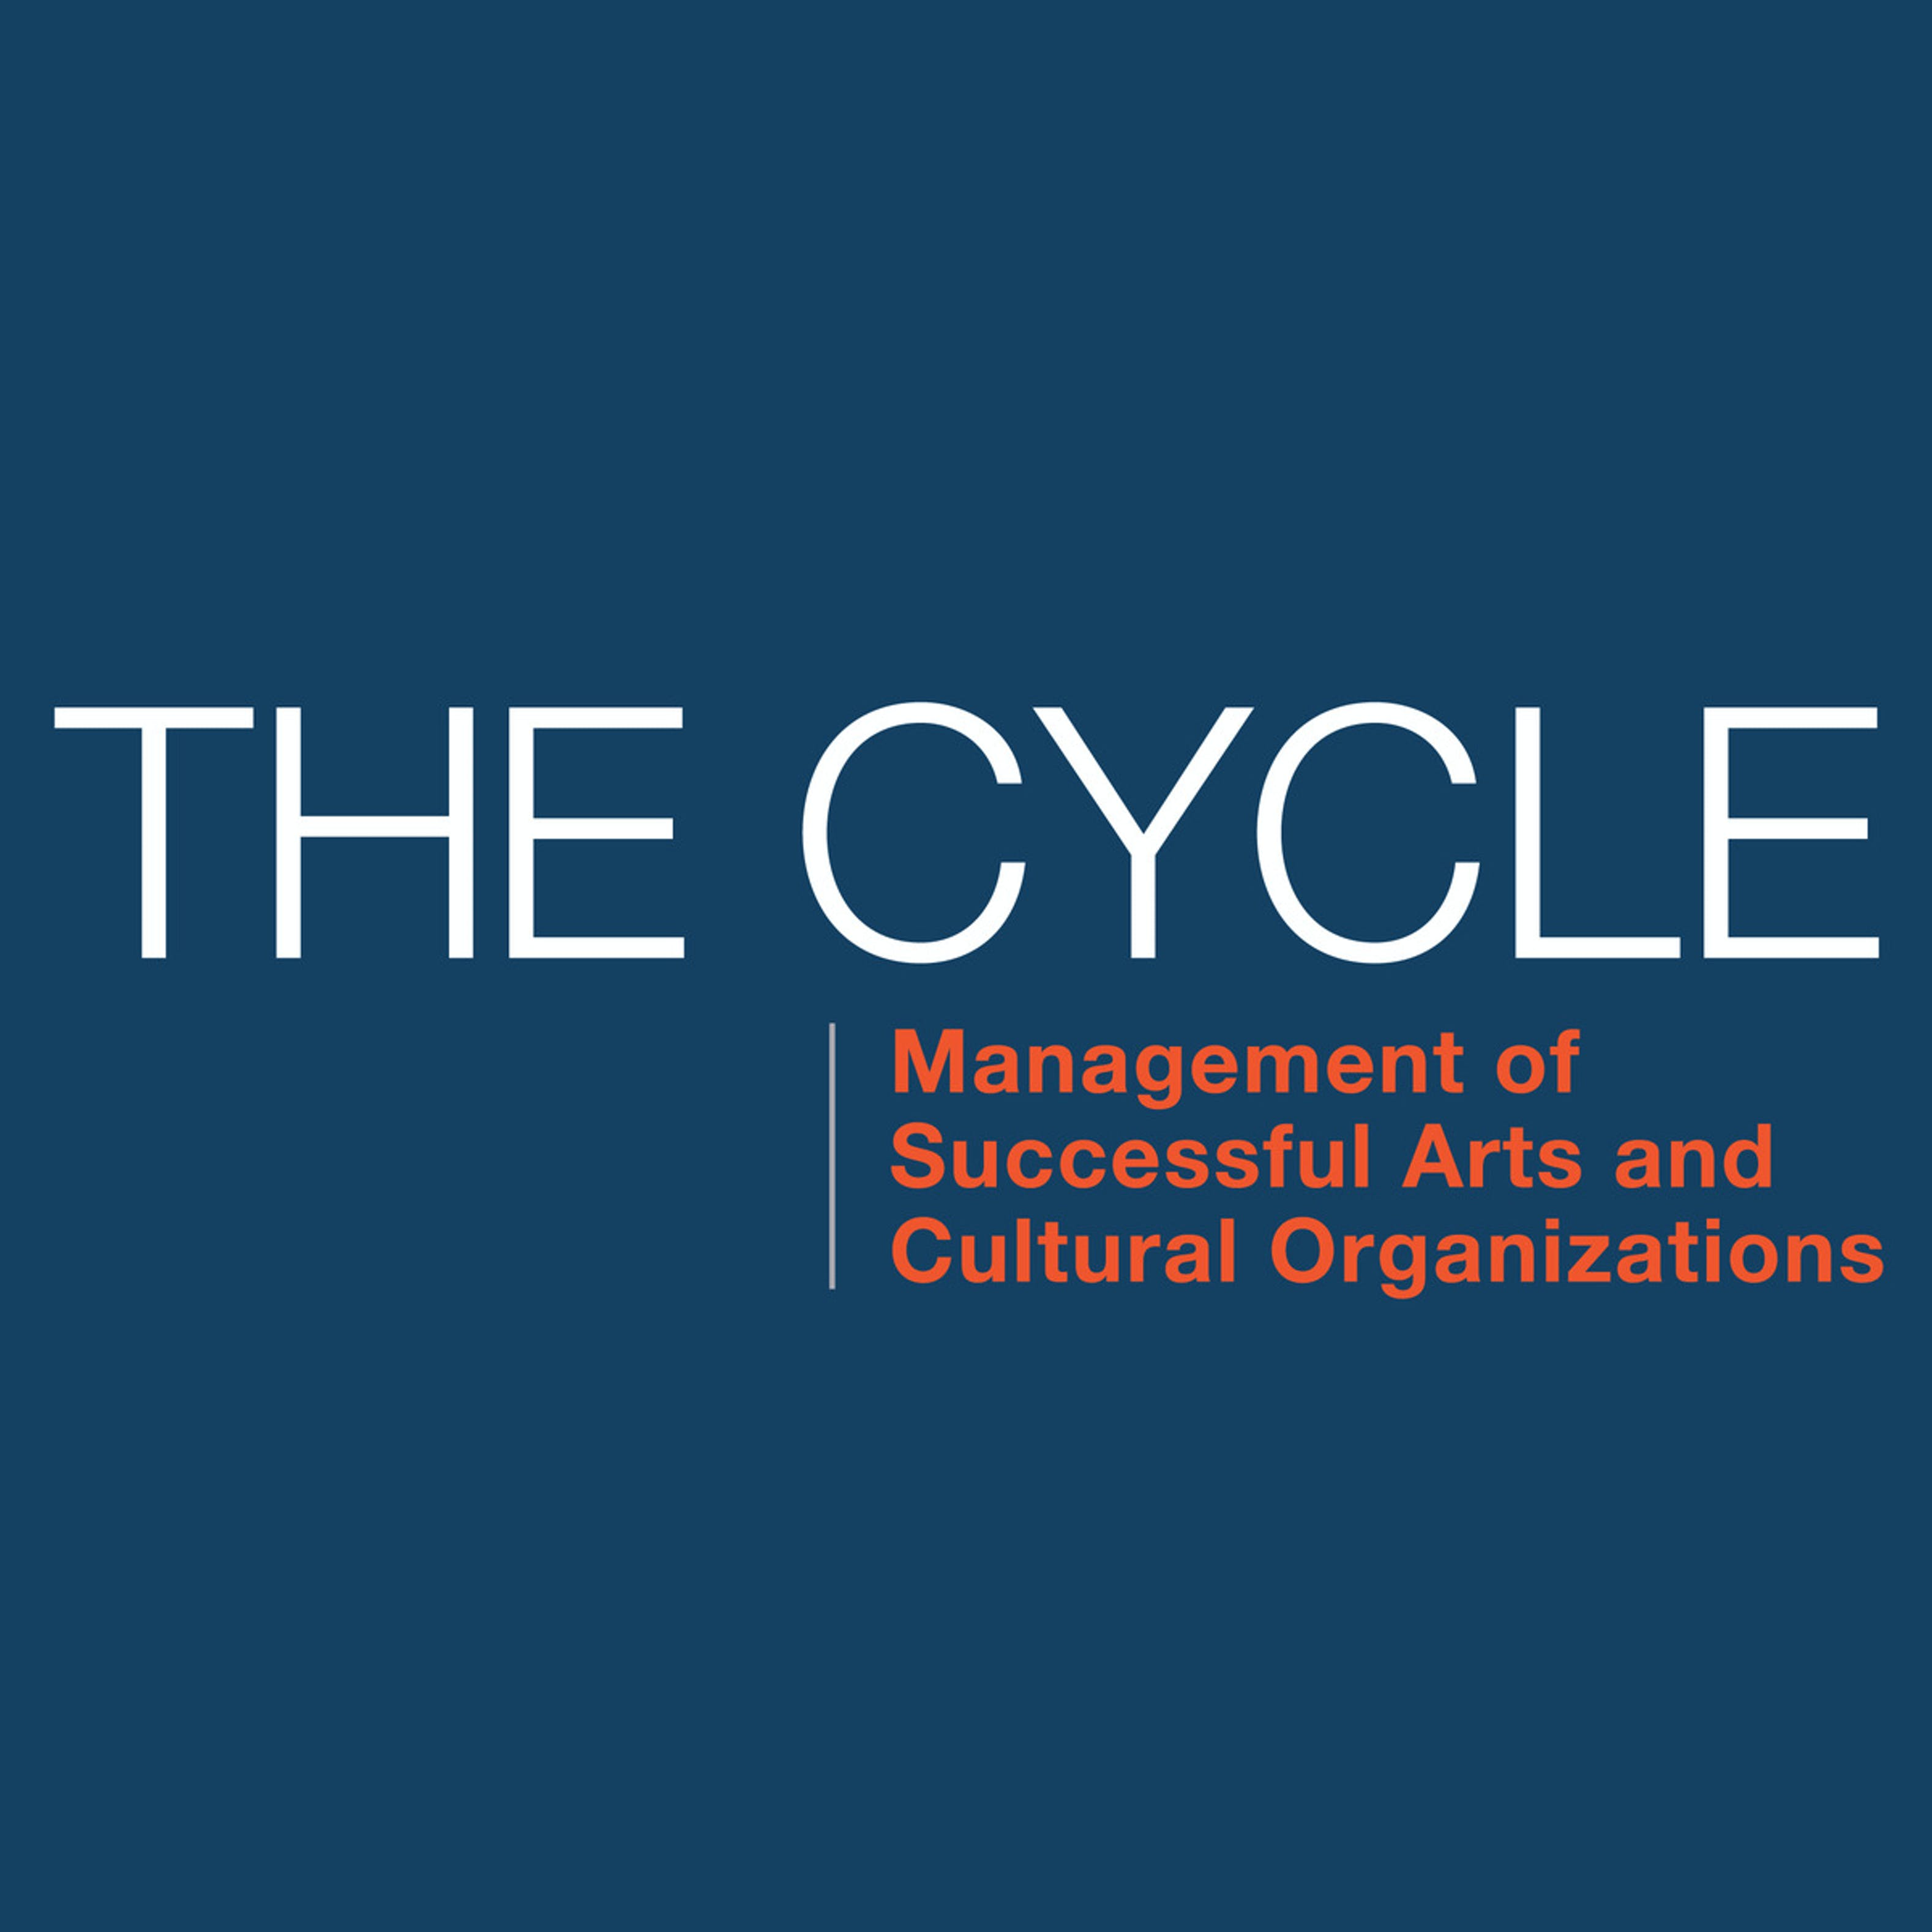 The Cycle: Management of Successful Arts and Cultural Organizations